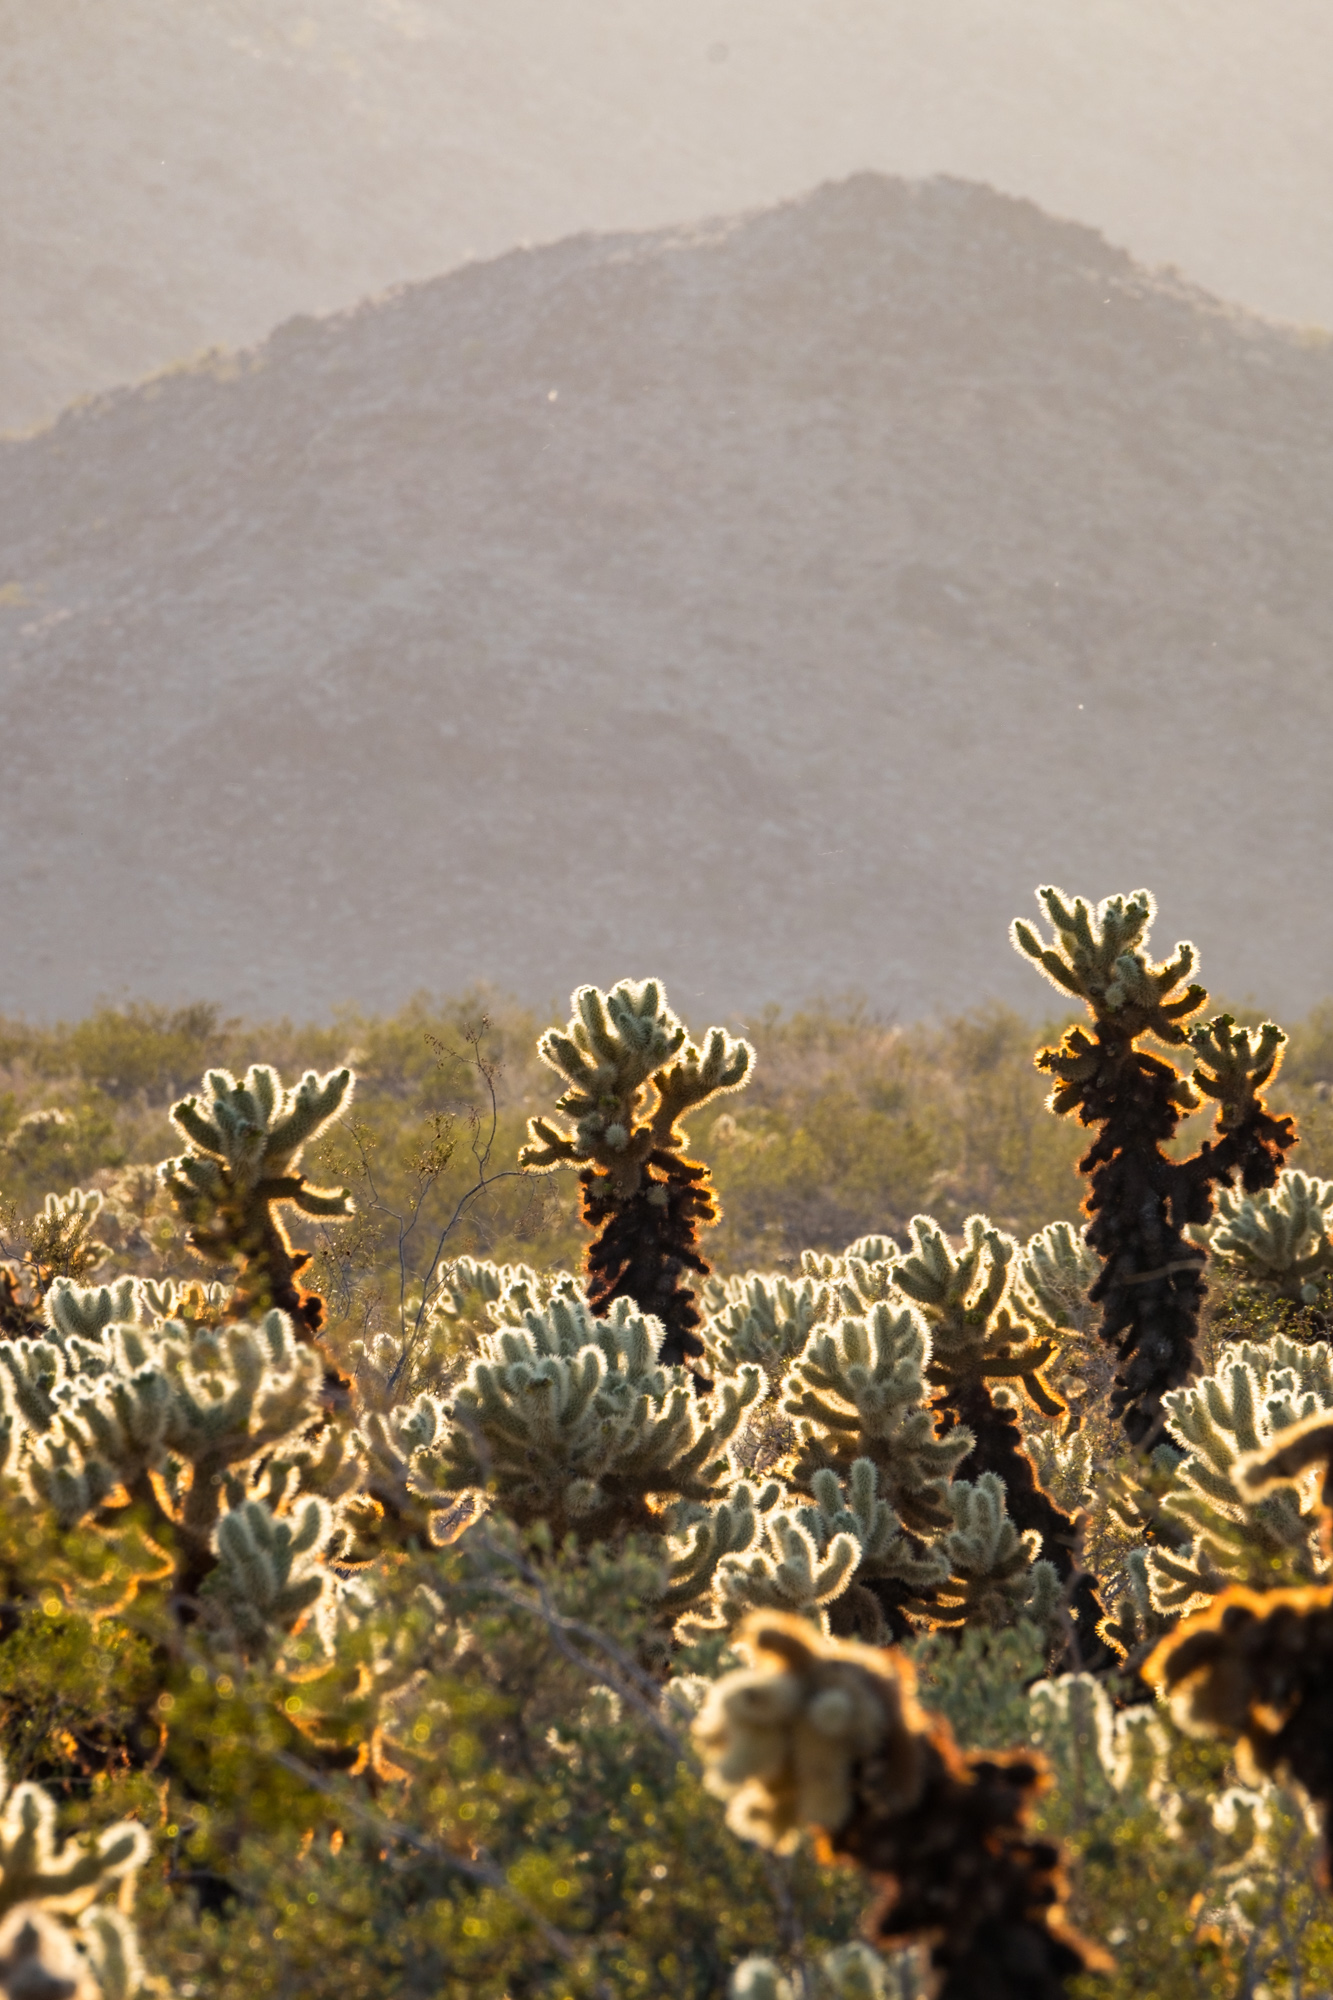 The Cholla Cactus are especially pretty when highlighted by the low setting sun.